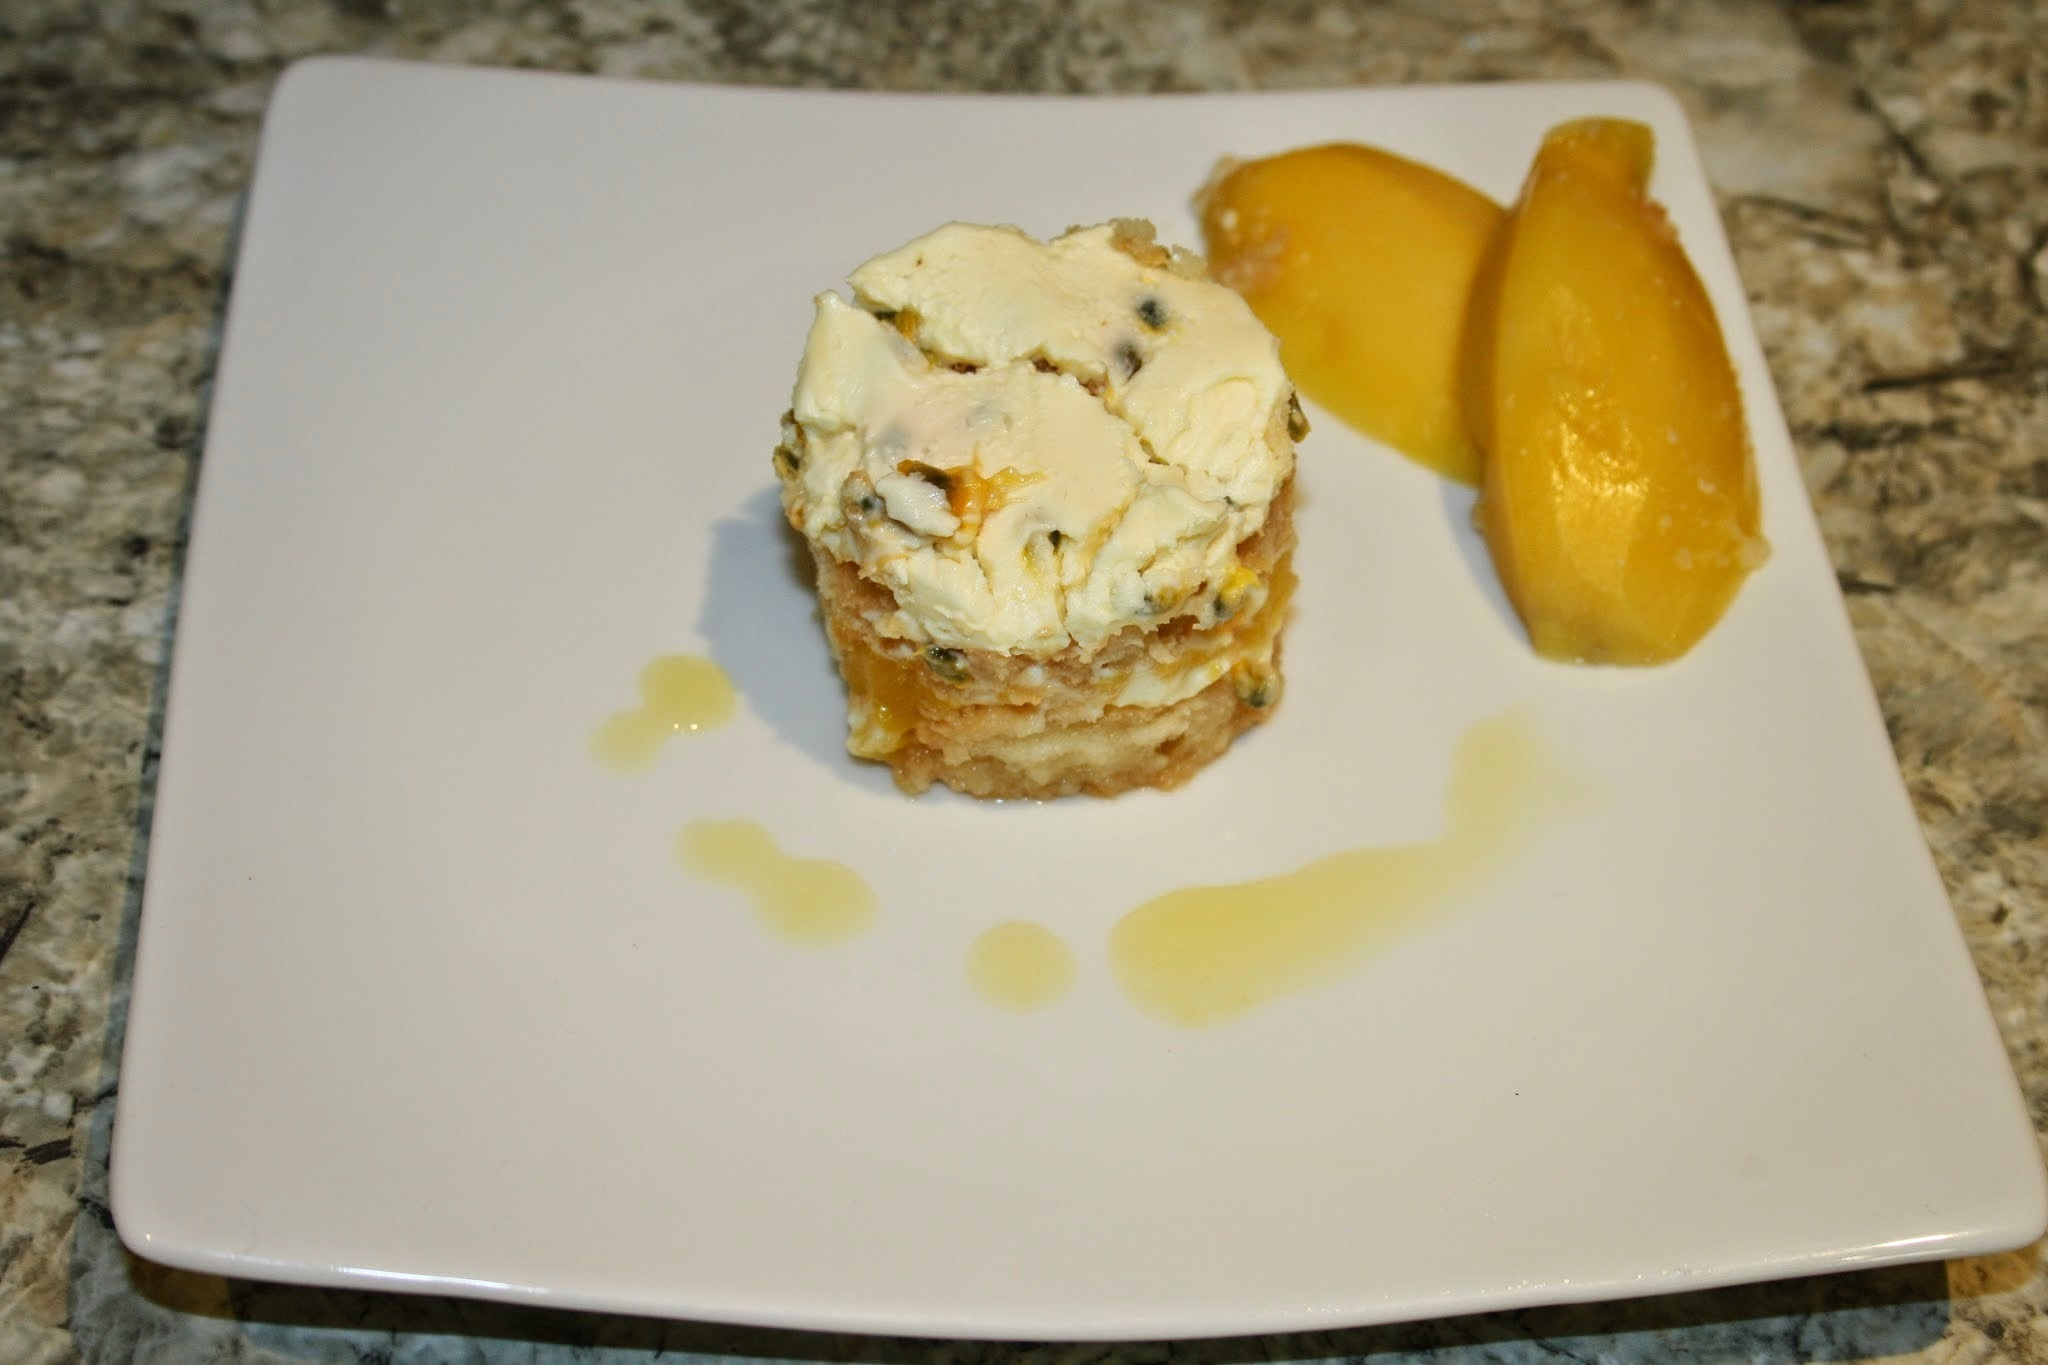 Mango and Passionfruit Tiramisu